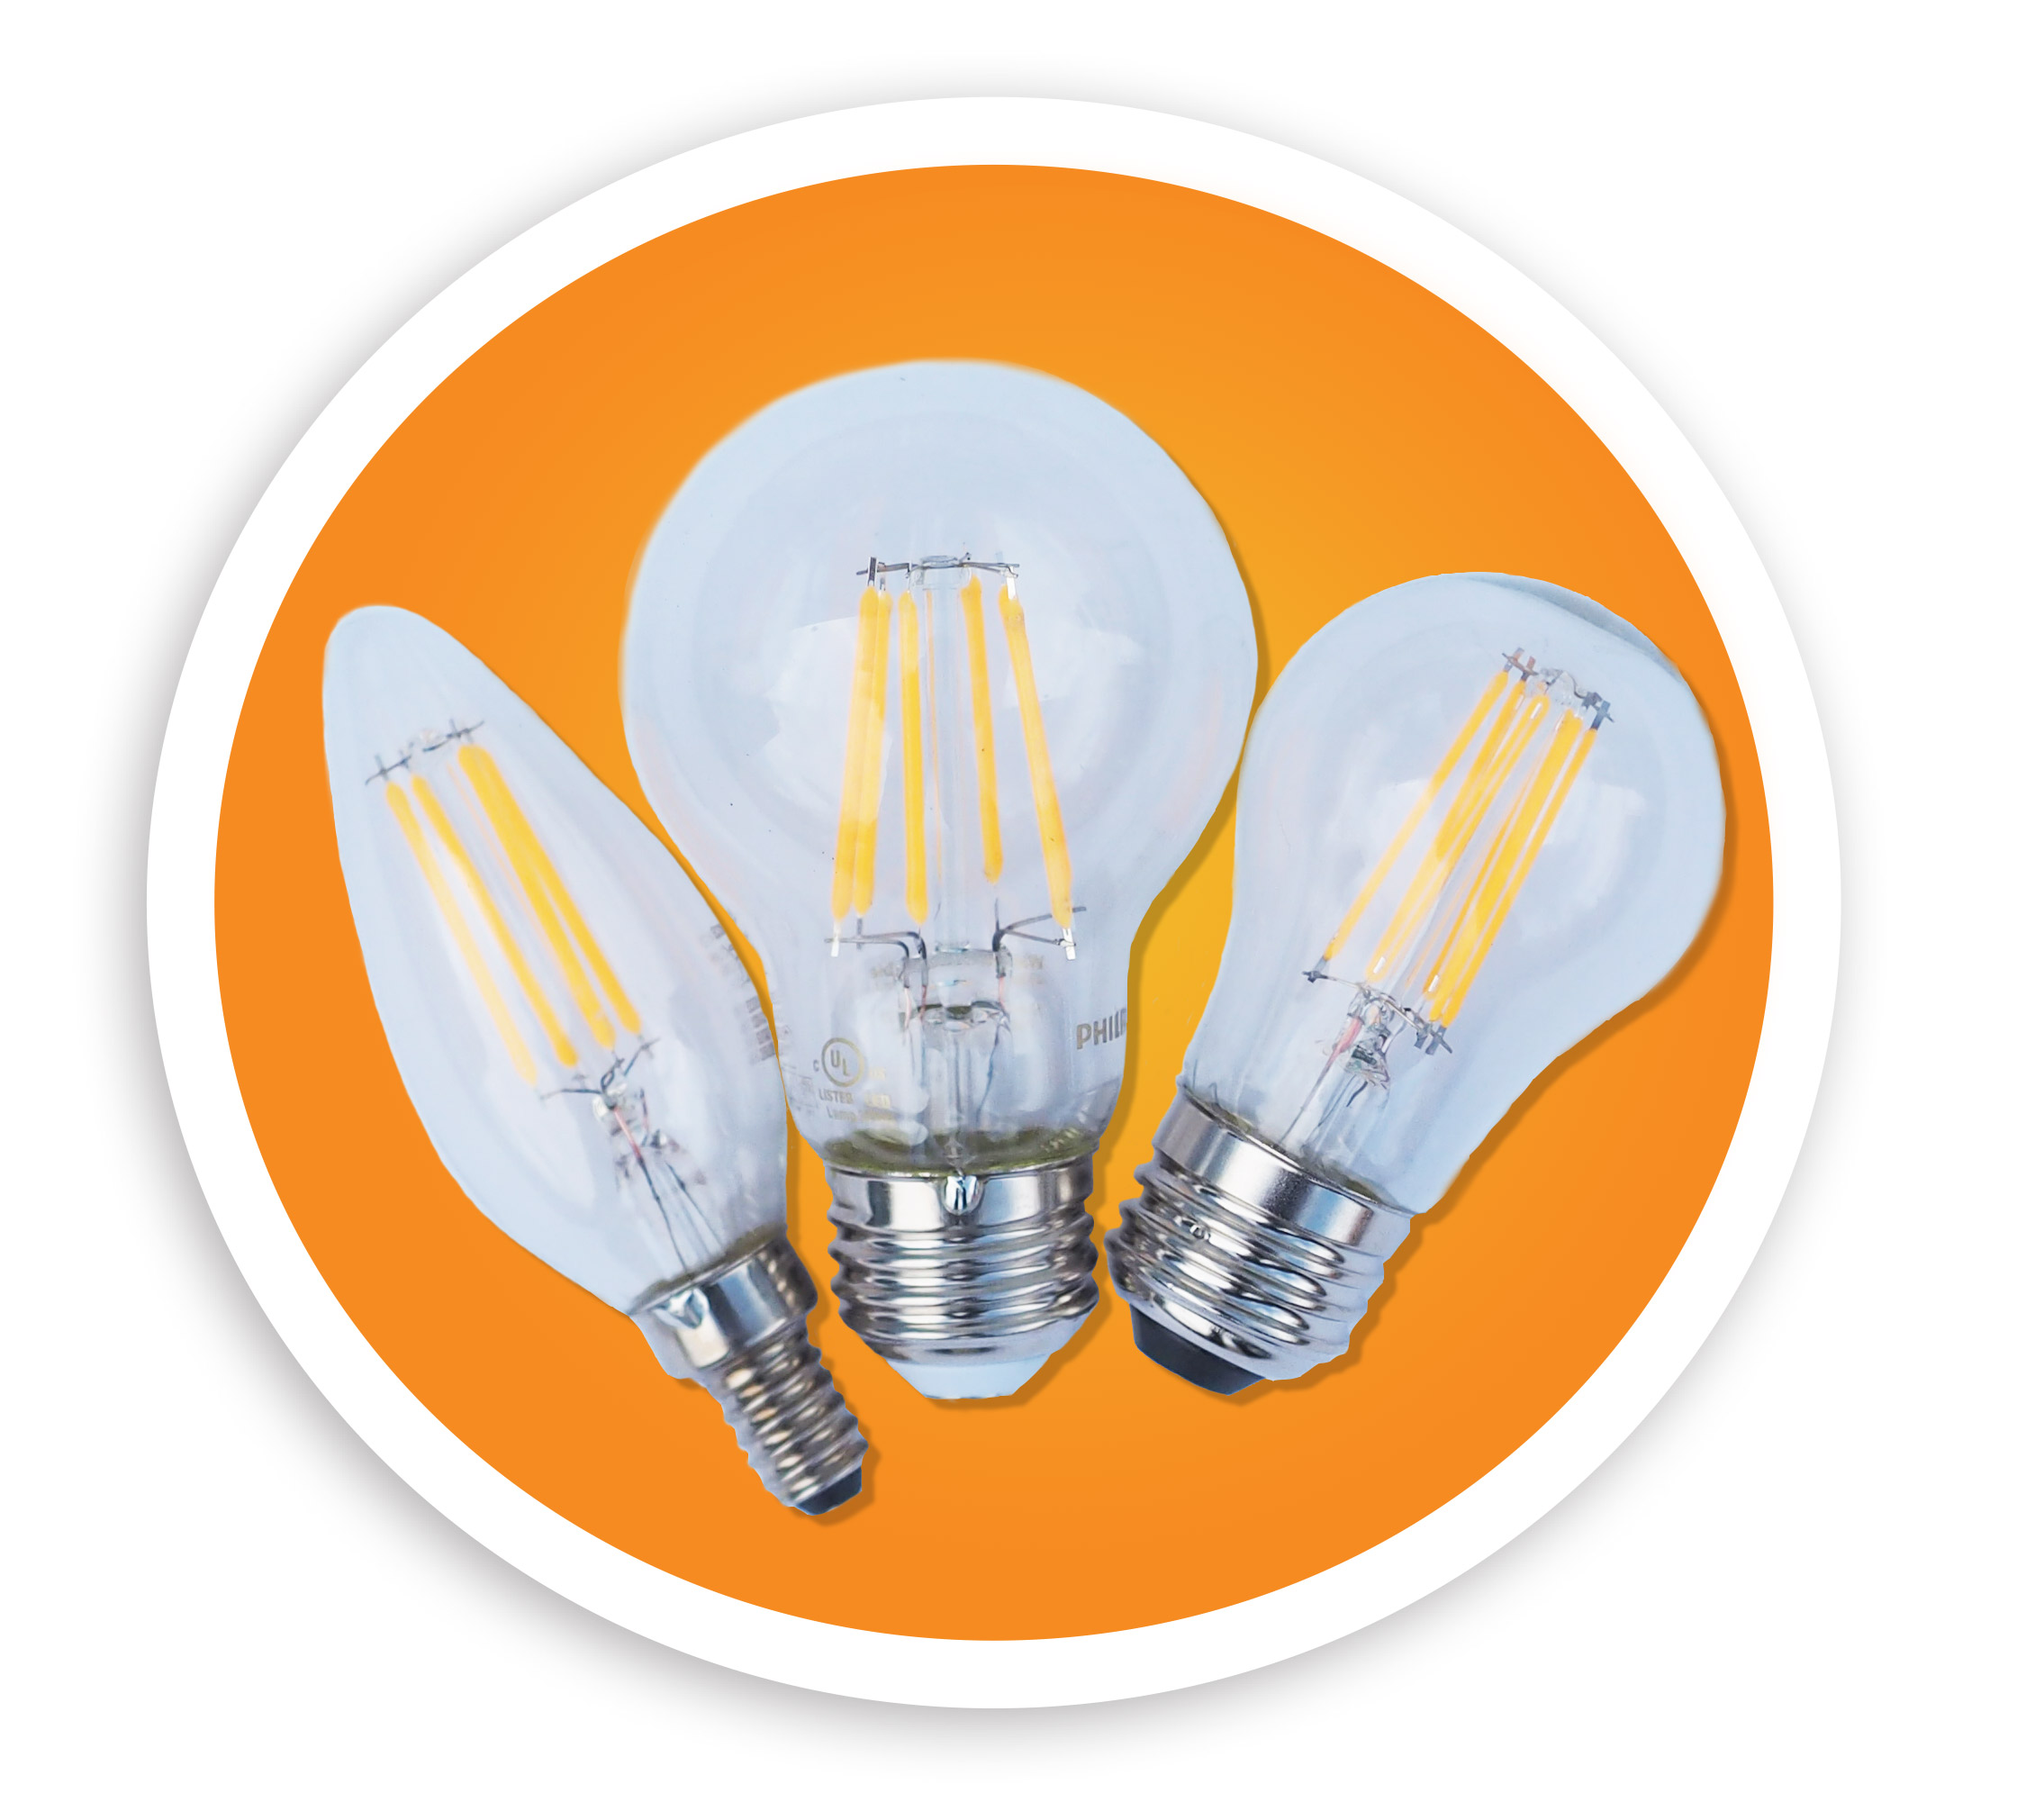 Picture of 3 LED light bulbs. NLR recycles LED bulbs and many other style lamps.